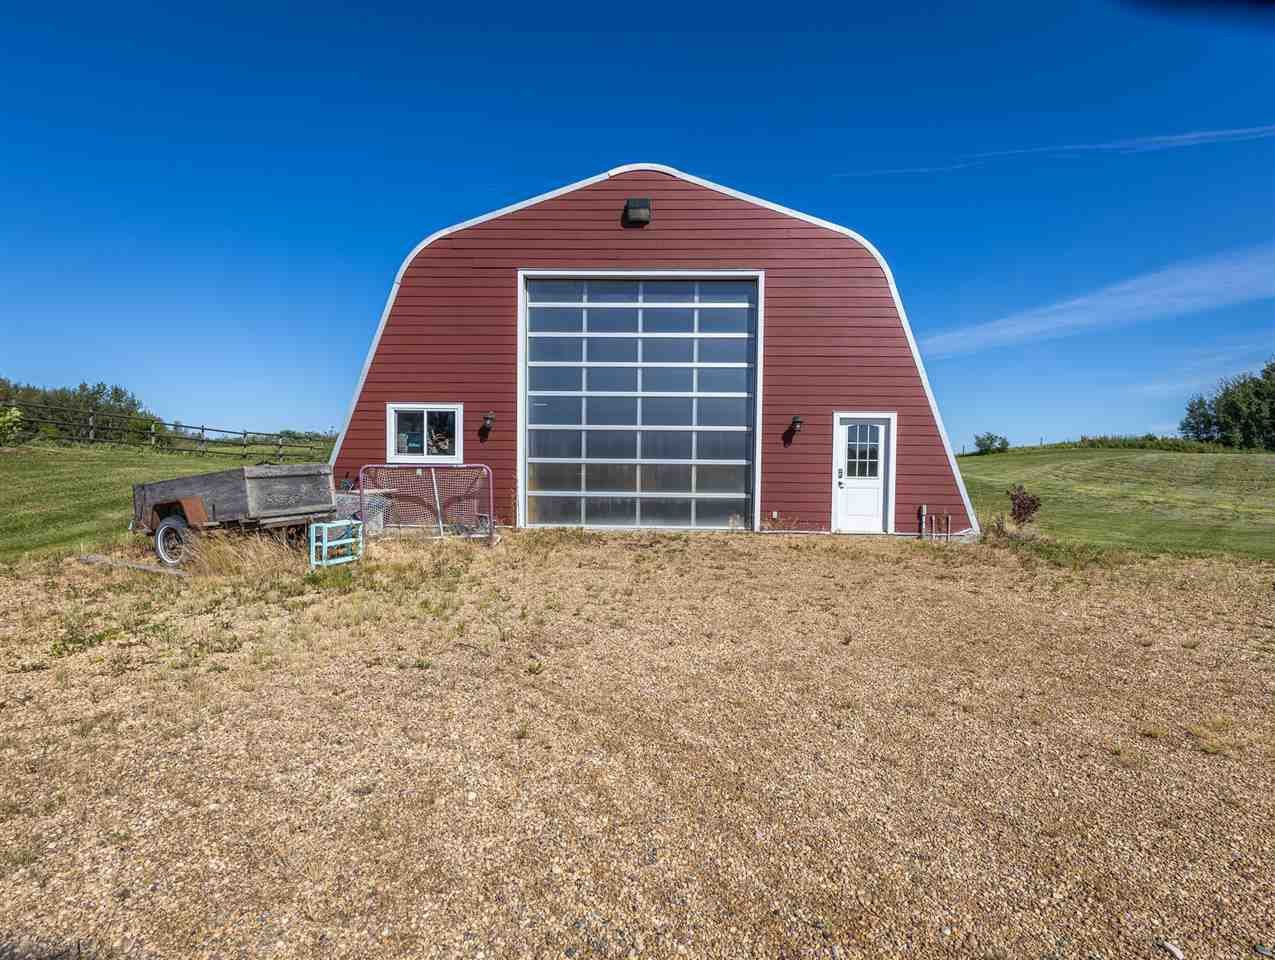 Main Photo: 210 50125 RGE RD 233: Rural Leduc County Rural Land/Vacant Lot for sale : MLS®# E4209078